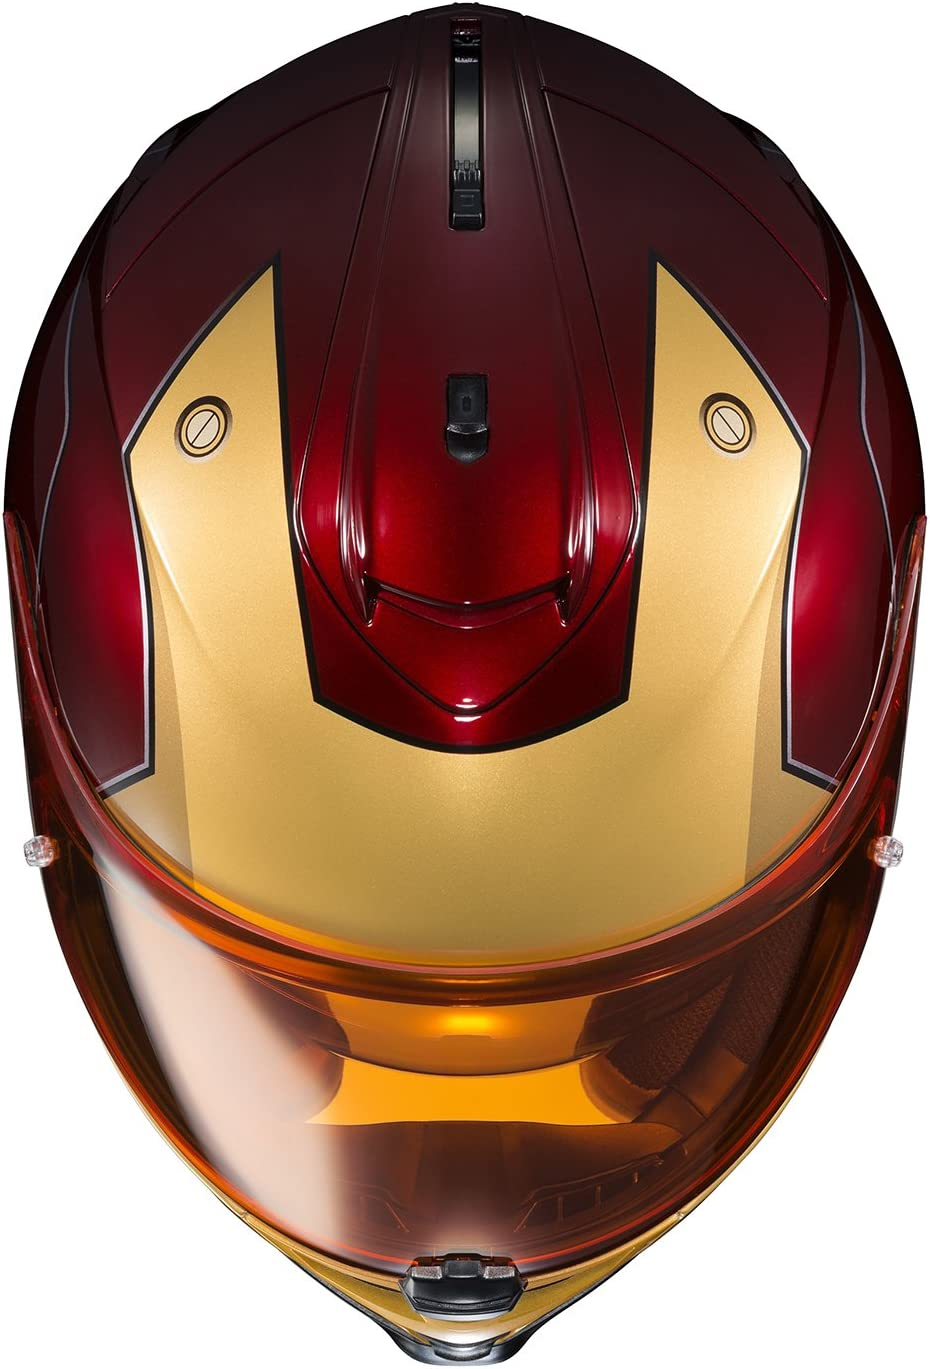 Red//Yellow, X-Large HJC Helmets Marvel IS-17 Unisex-Adult Full Face IRONMAN Street Motorcycle Helmet